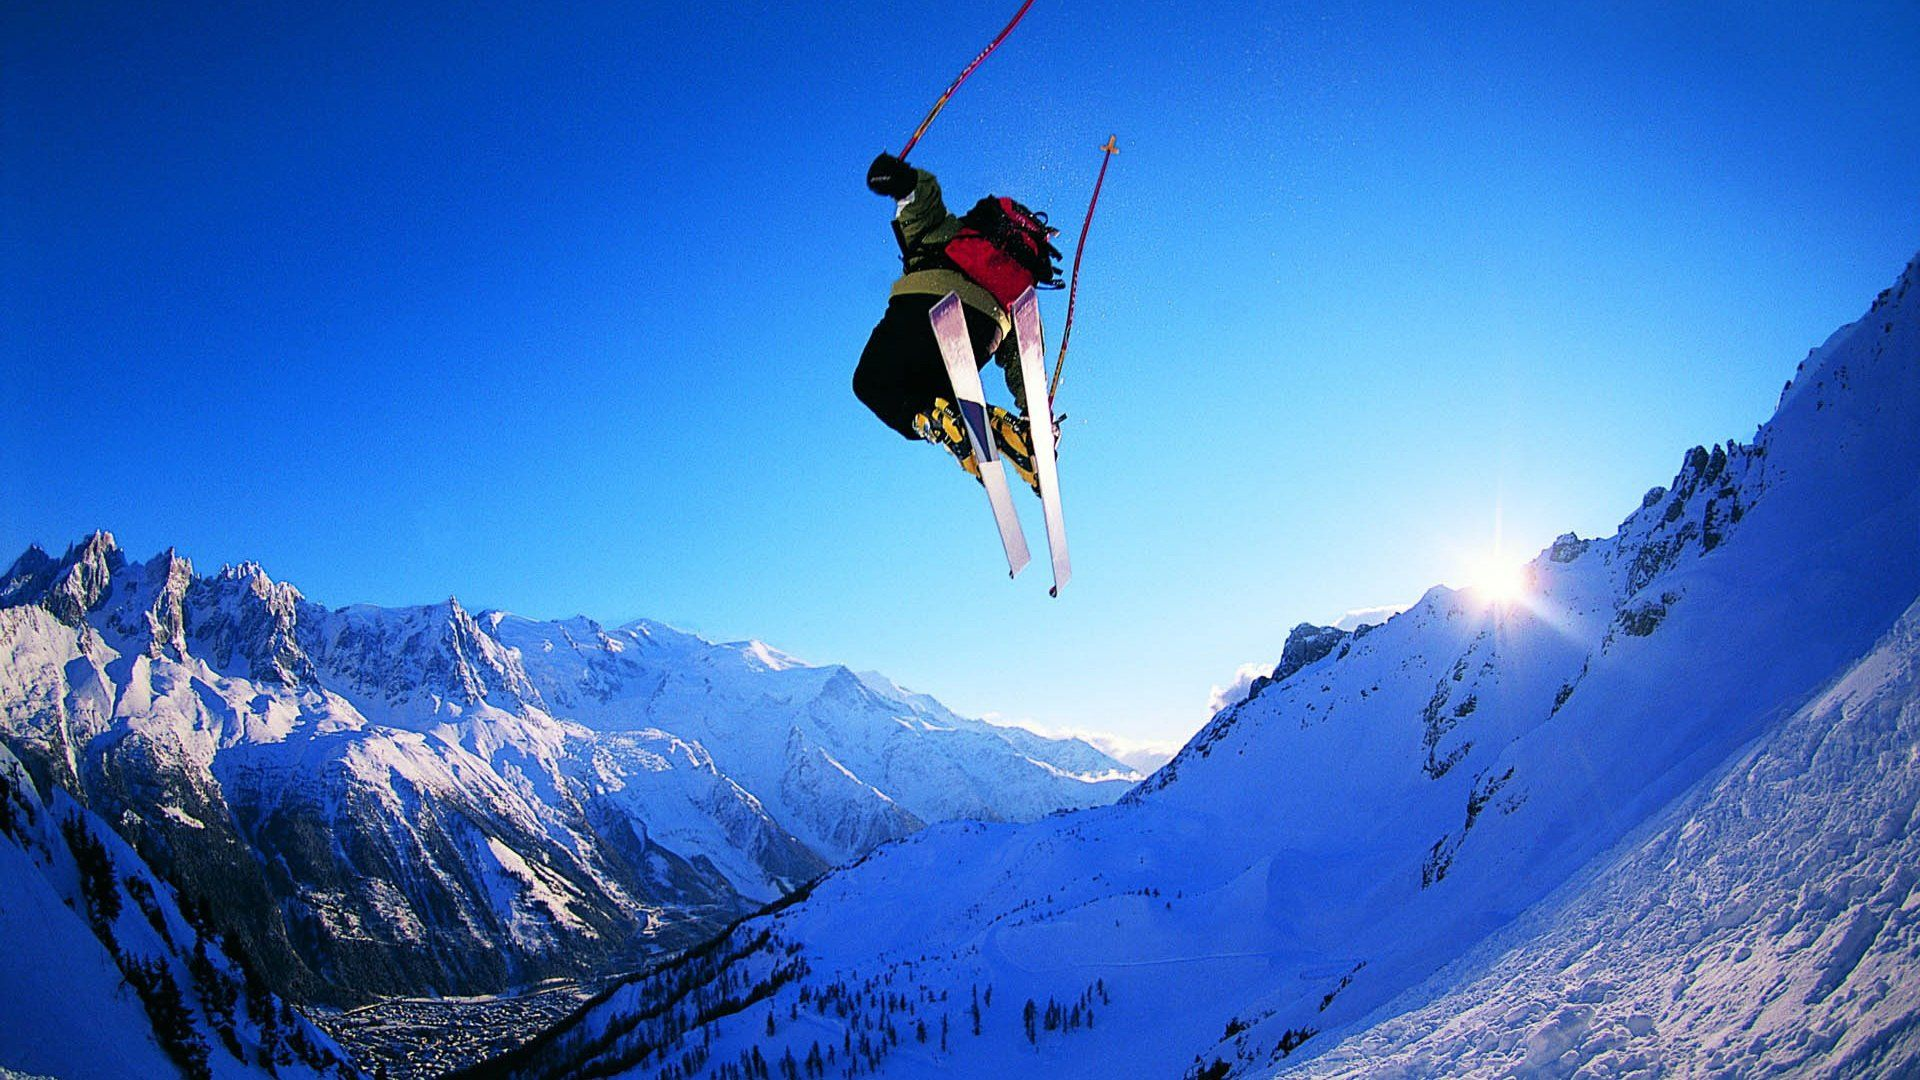 pin snow snowboard mountains - photo #30